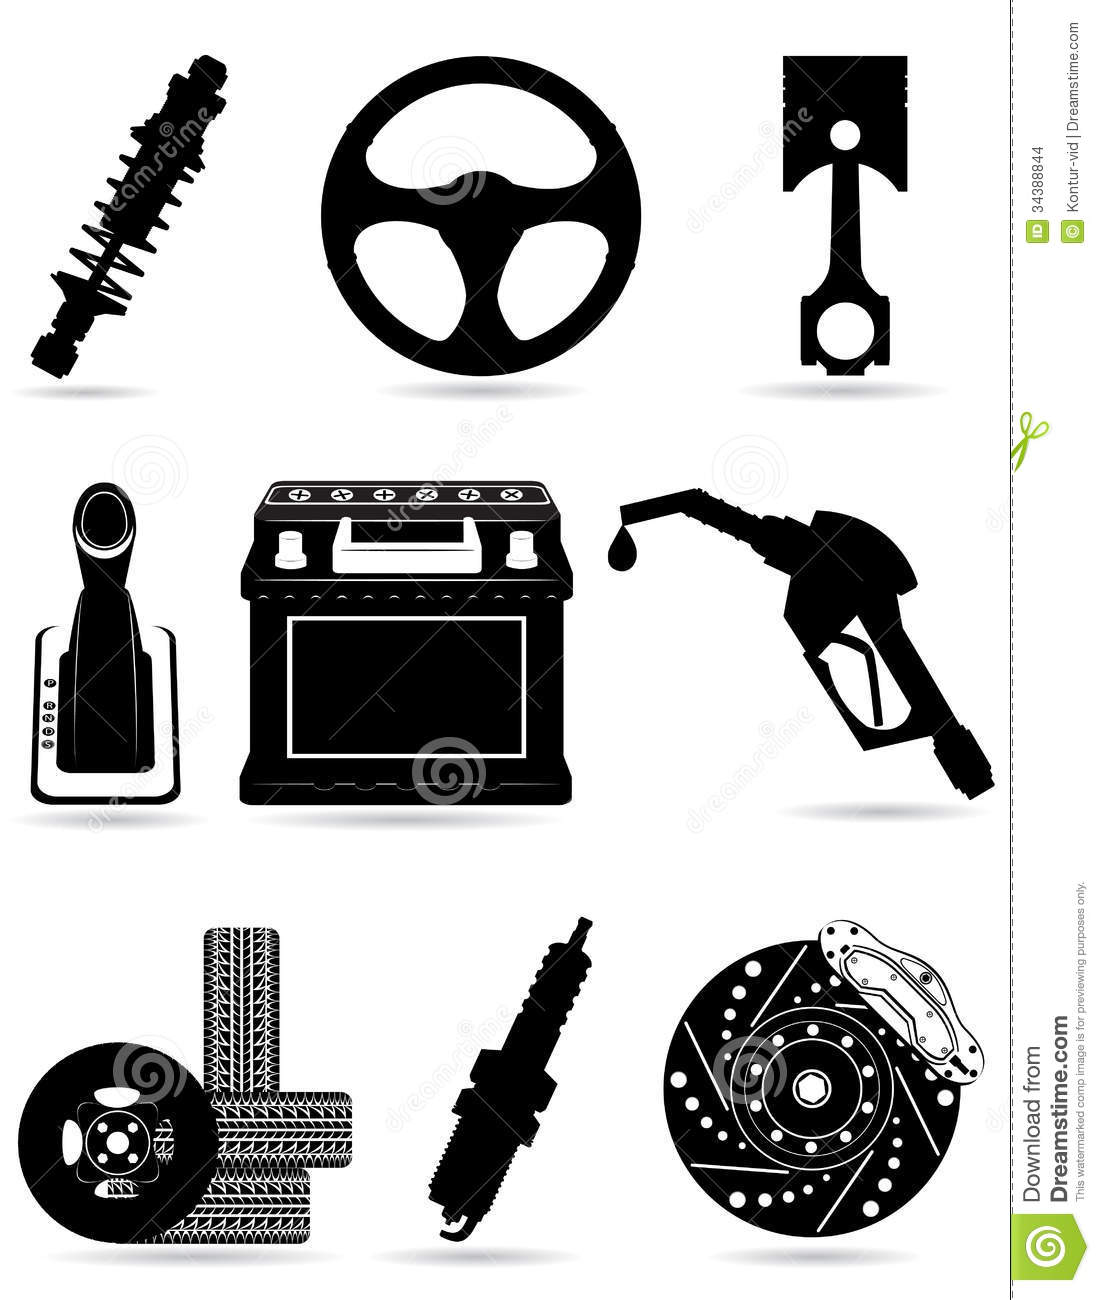 Forged Parts Black And White : Set icons of car parts black silhouette vector ill stock